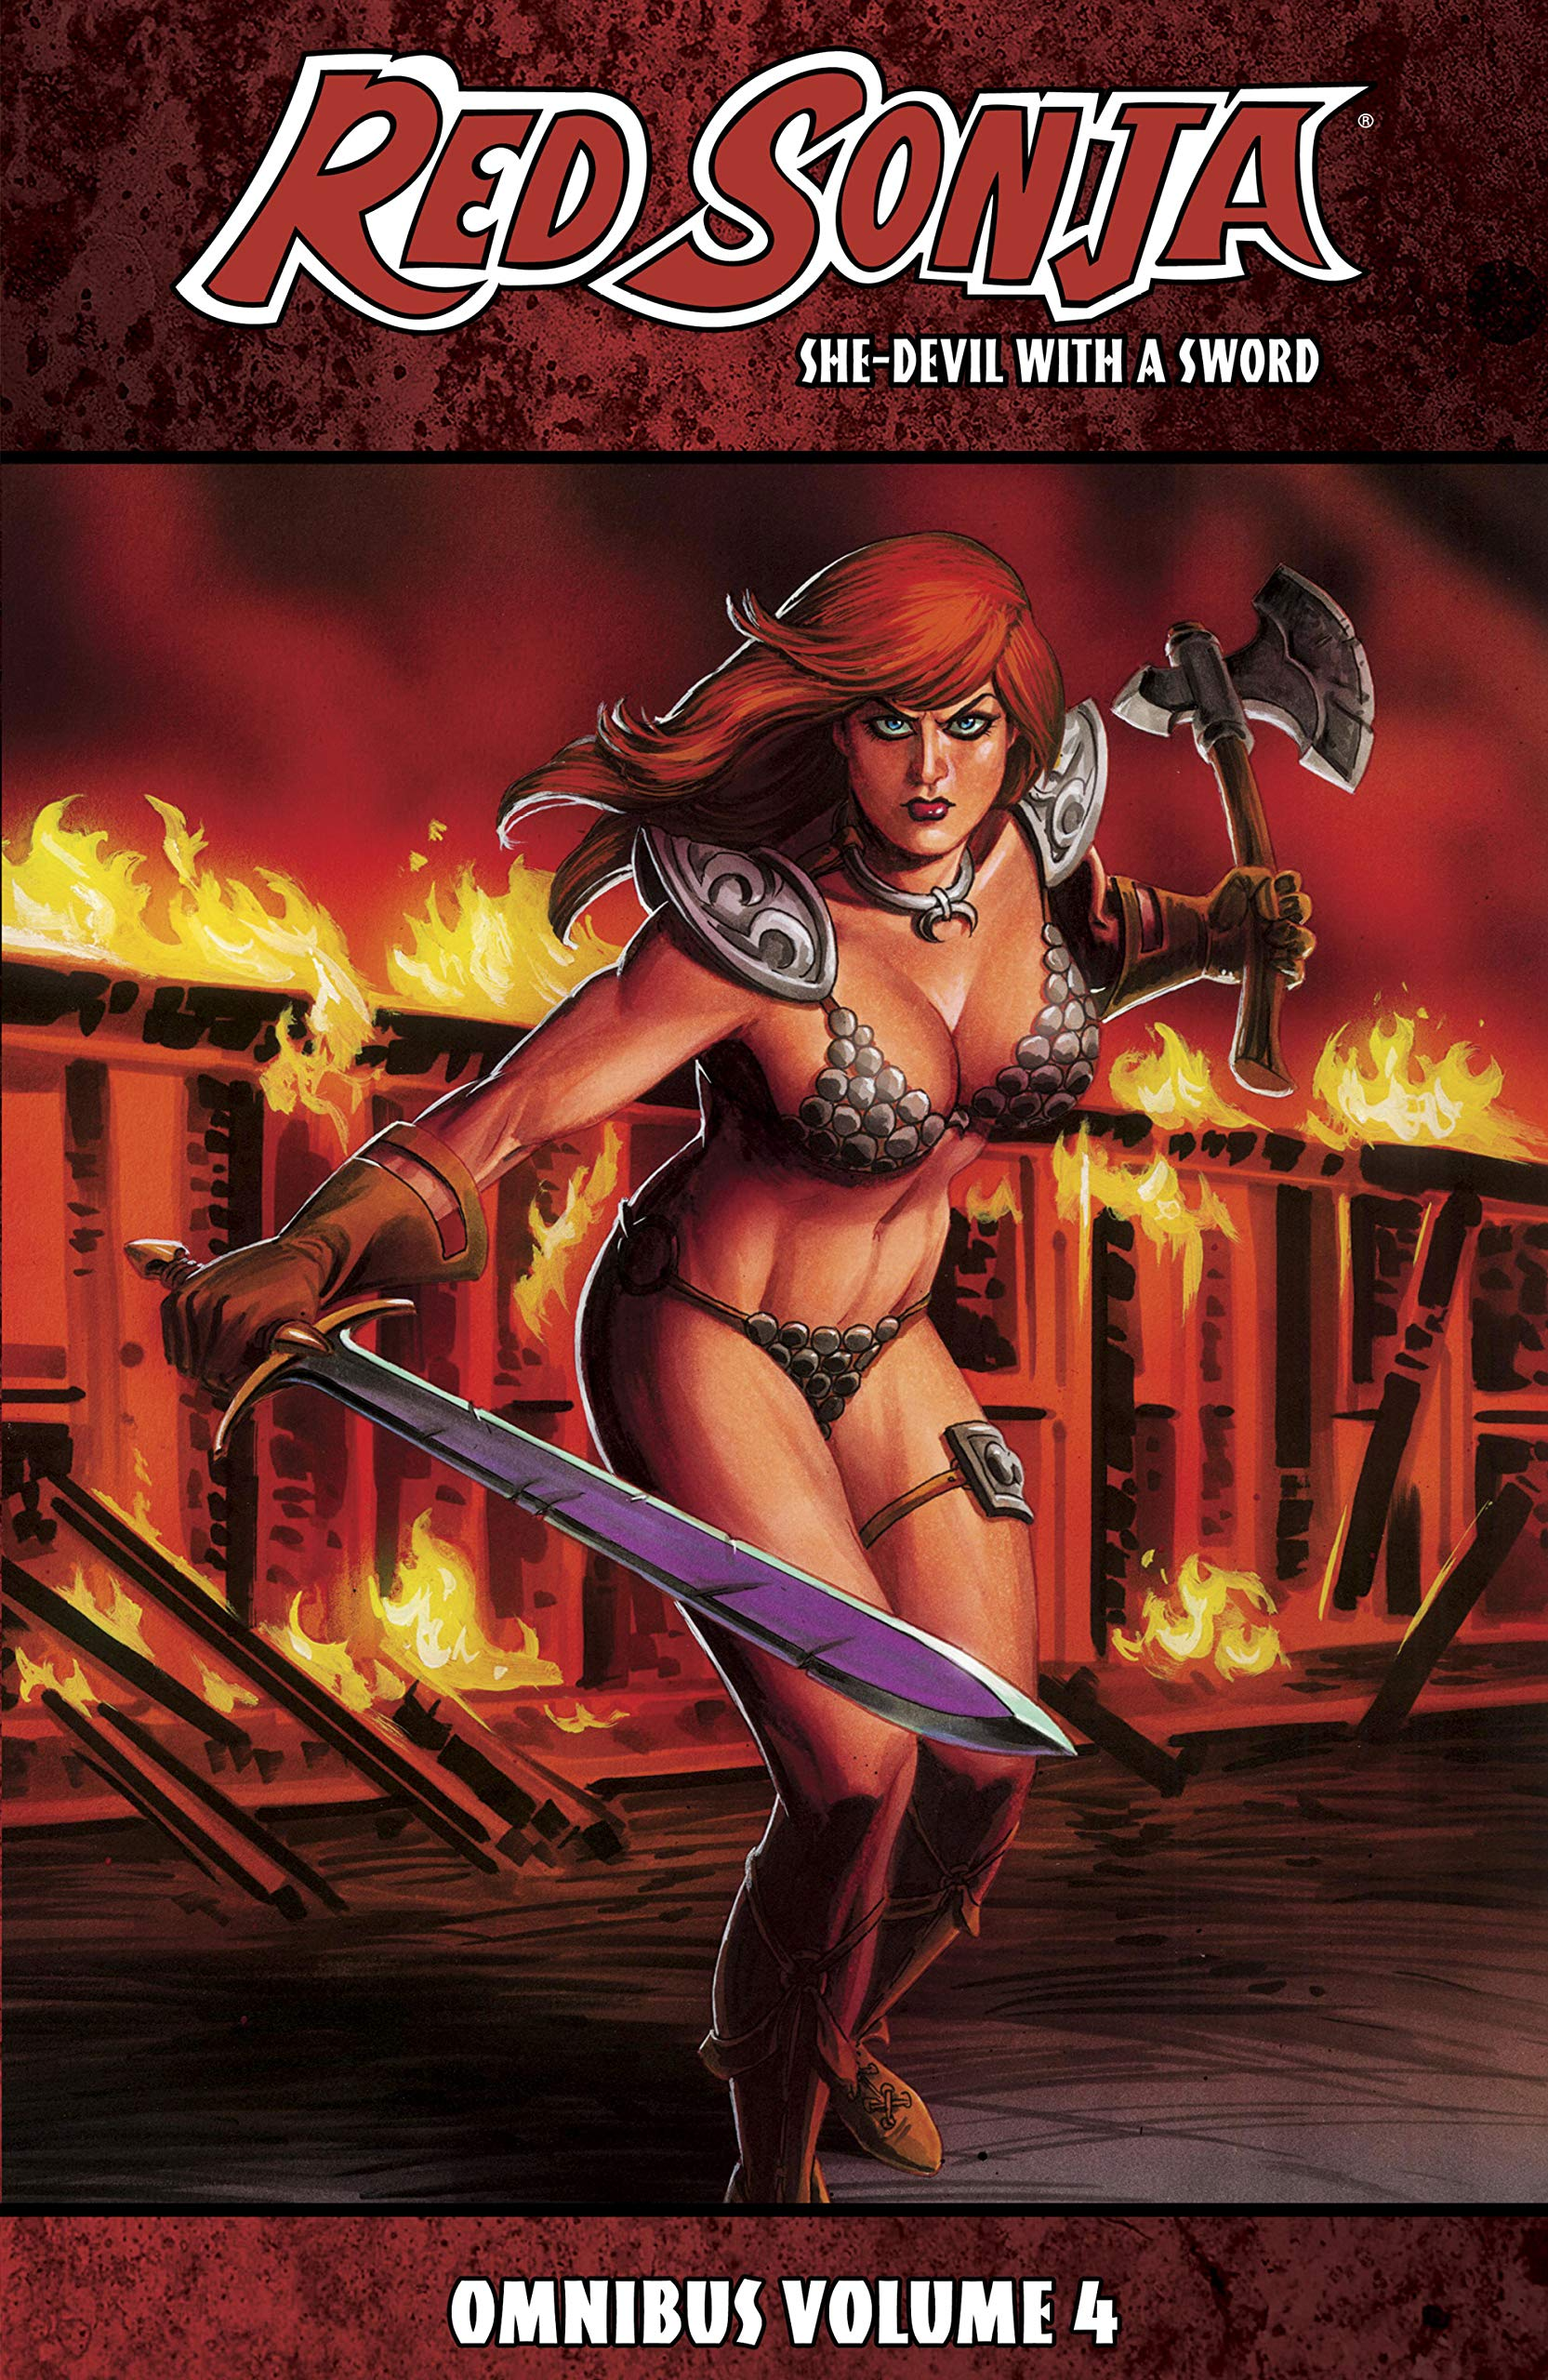 Red Sonja: She-Devil With A Sword Omnibus Vol. 4 (Red Sonja: She-Devil With a Sword (2010-2013))